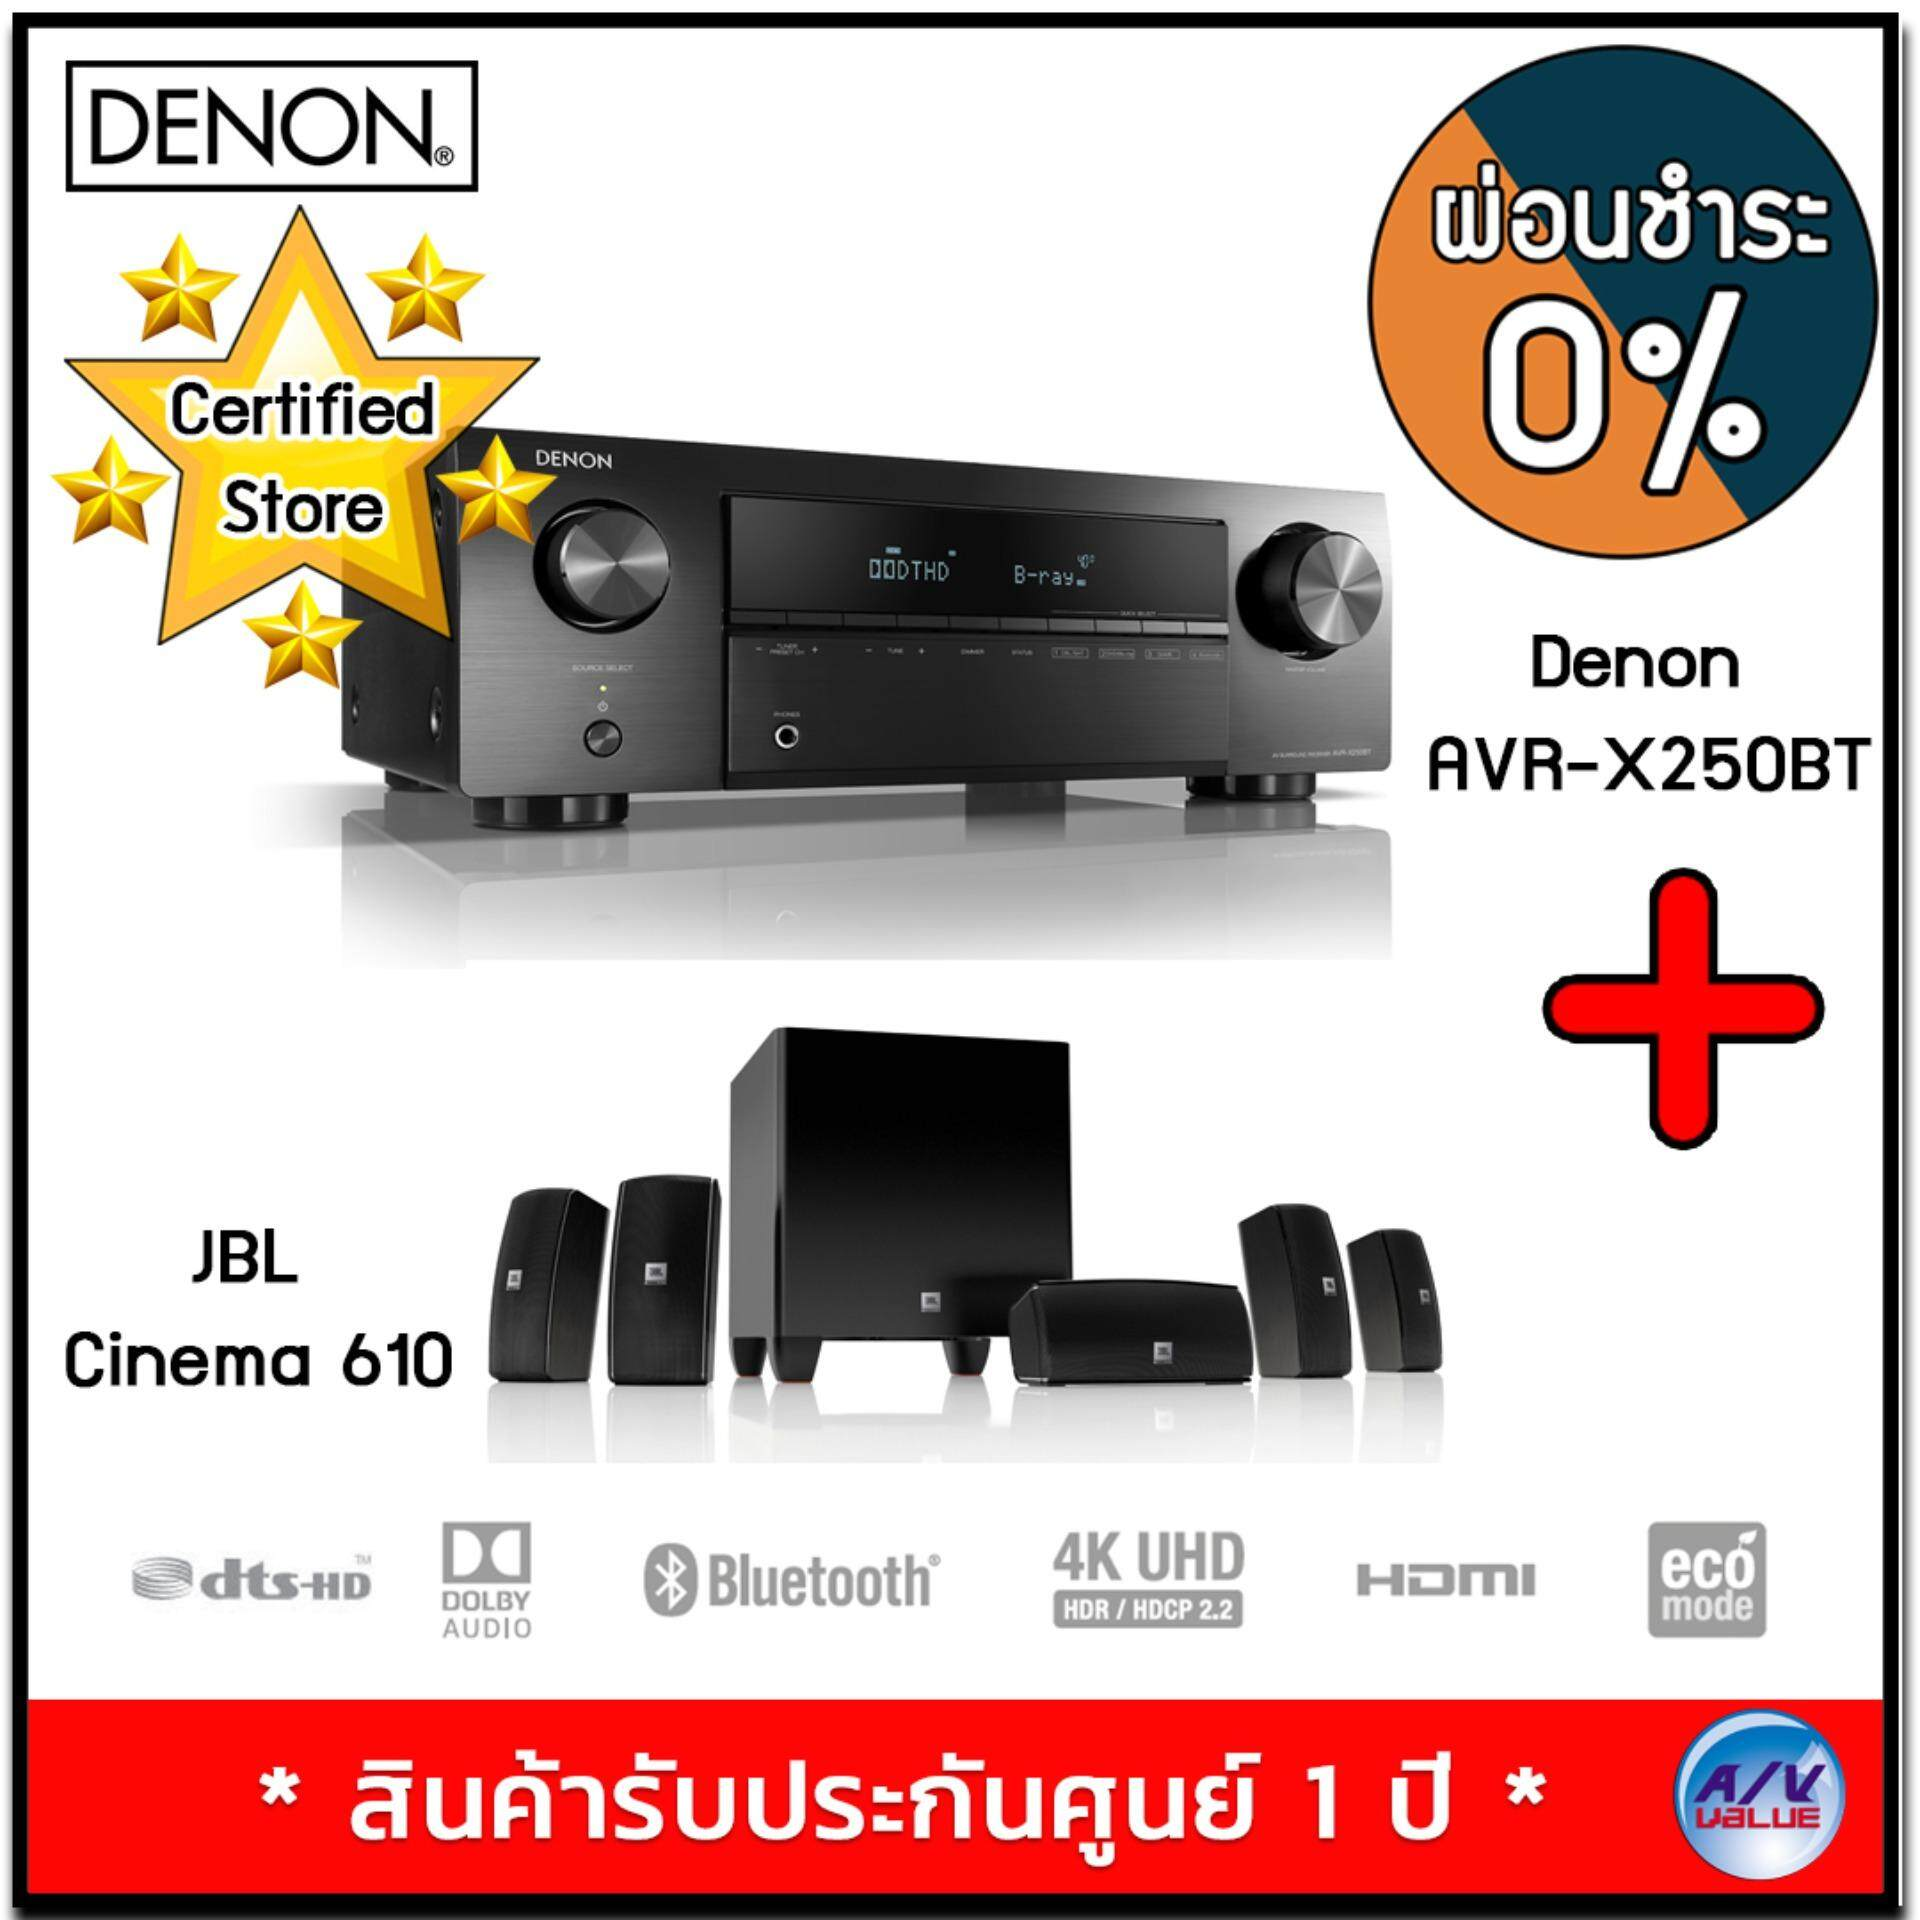 ยี่ห้อไหนดี  กาฬสินธุ์ Denon AVR-X250BT 5.1 Ch. 4K Ultra HD AV Receiver with Bluetooth + JBL Cinema 610